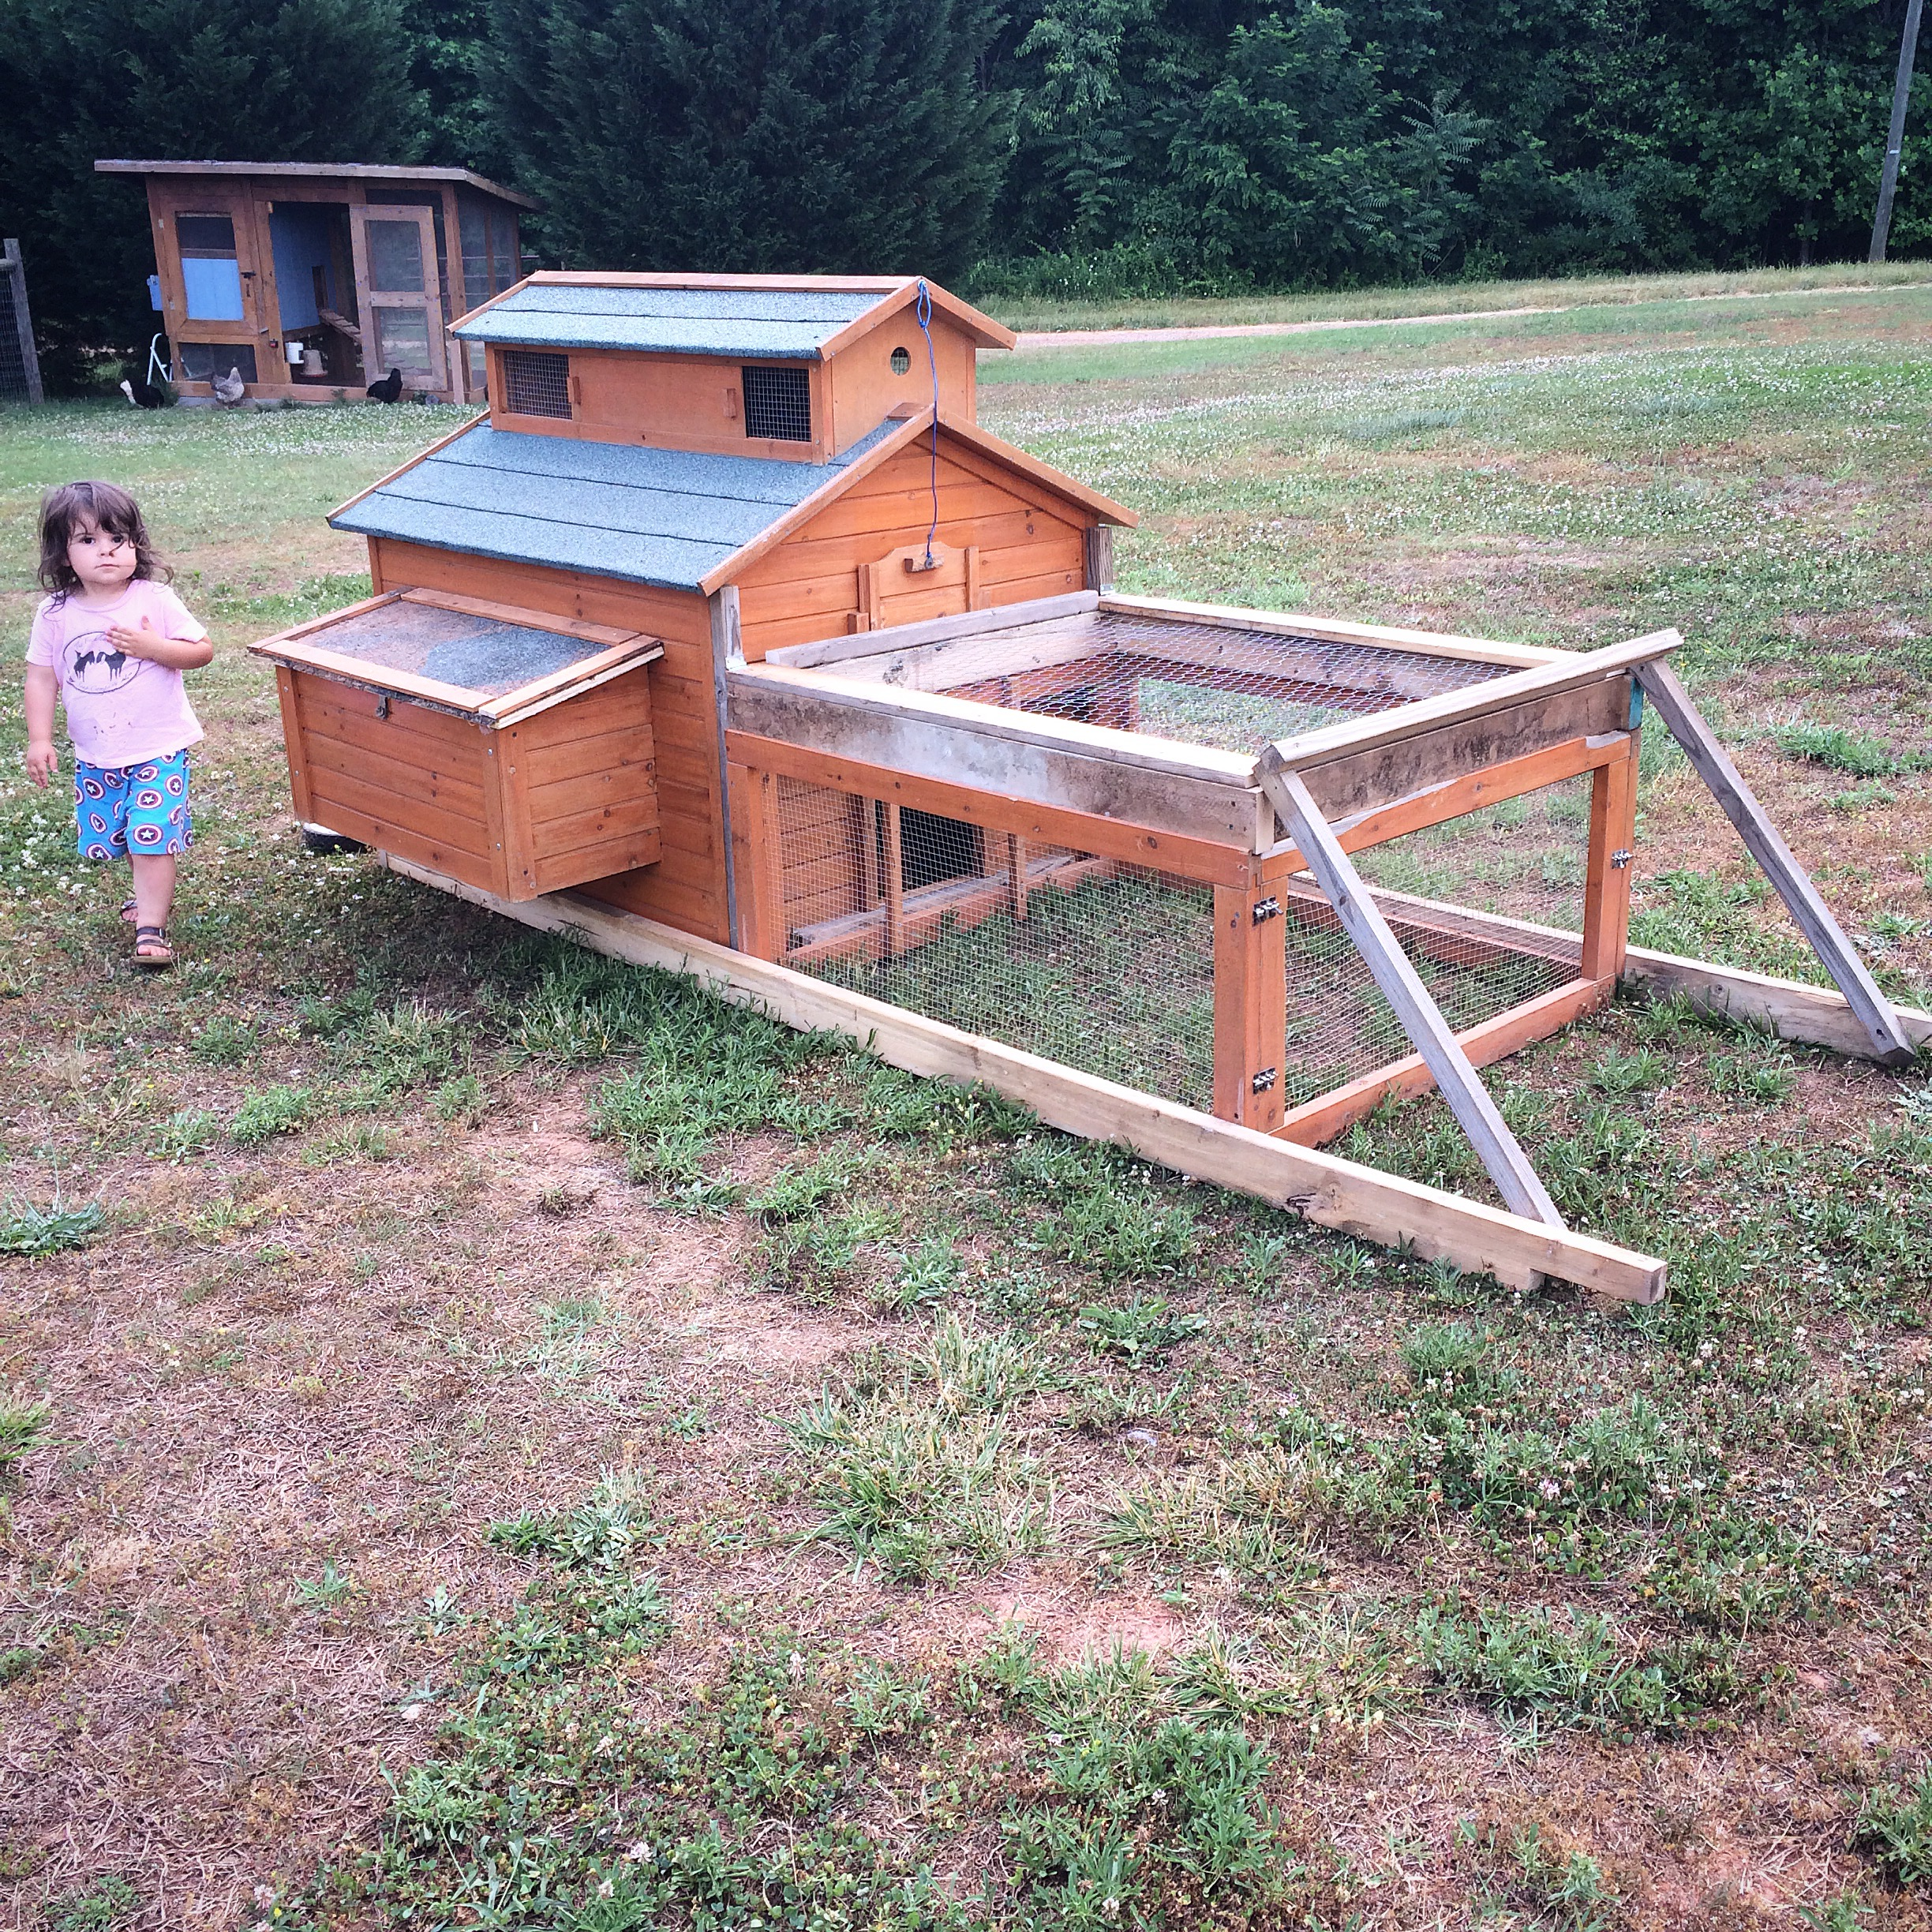 Chicken Tractor - The Freckled Farm - The Freckled Farm Soap Company